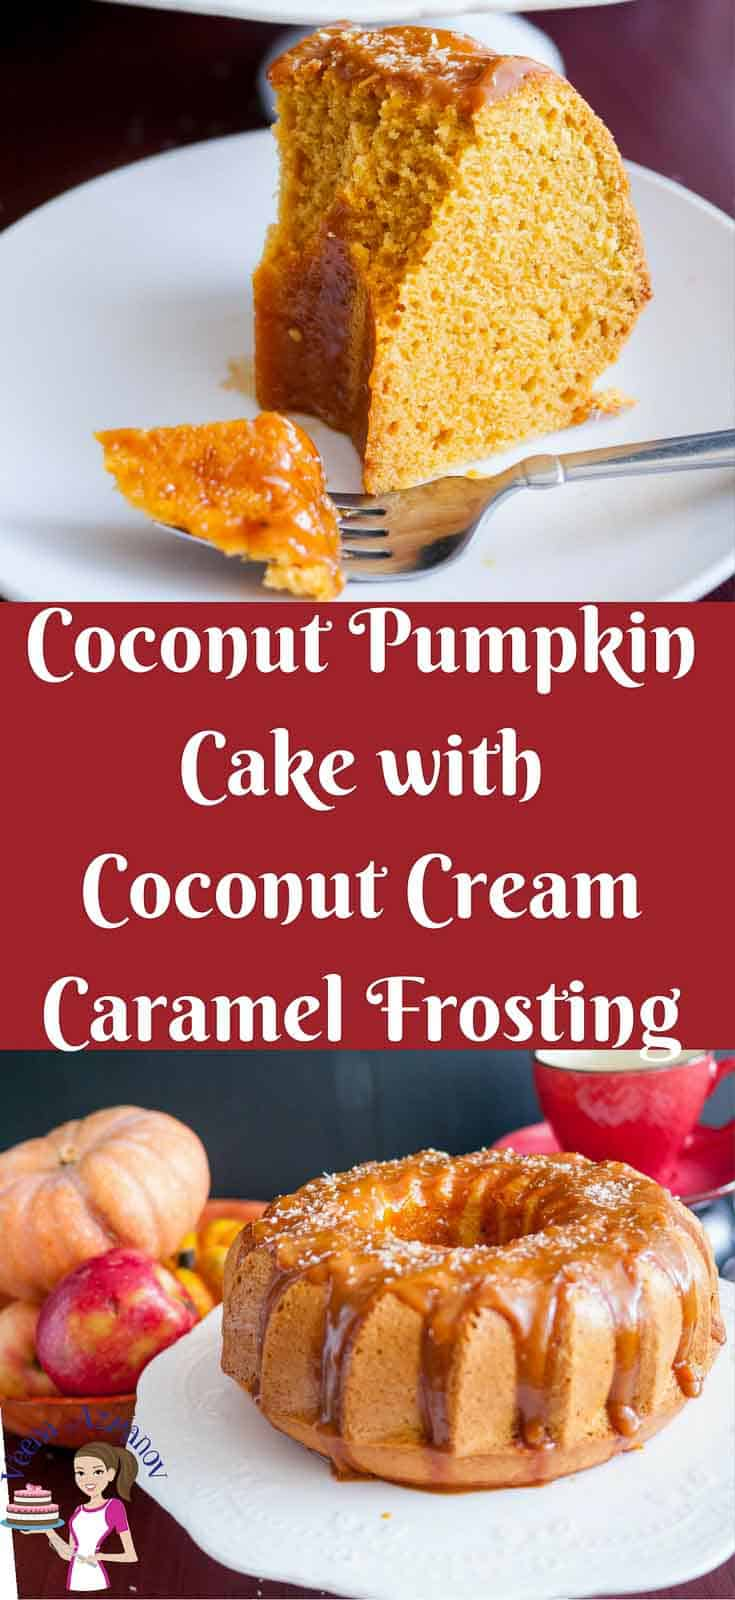 Pinterest image -It's the flavor of fall all over this moist coconut pumpkin cake drizzles with golden coconut cream caramel. The cake is a light and fully moist batter with the flavor of molasses from the brown sugar then enriched with pumpkin puree, pumpkin spice and coconut cream before baking to perfection.